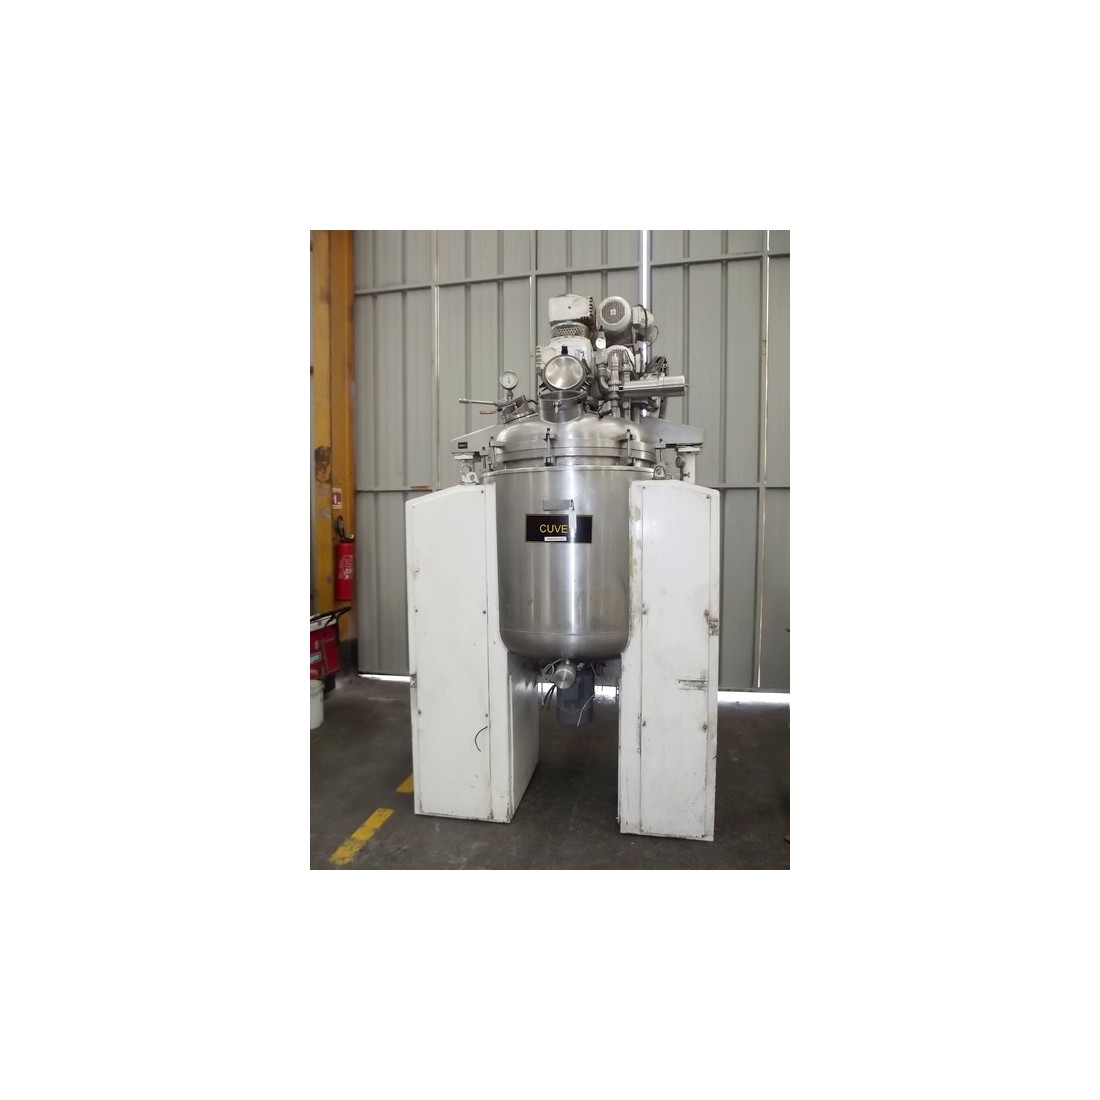 R6ME6367  Stainless steel SIP vacuum mixer 650 litres - Visible by appointment